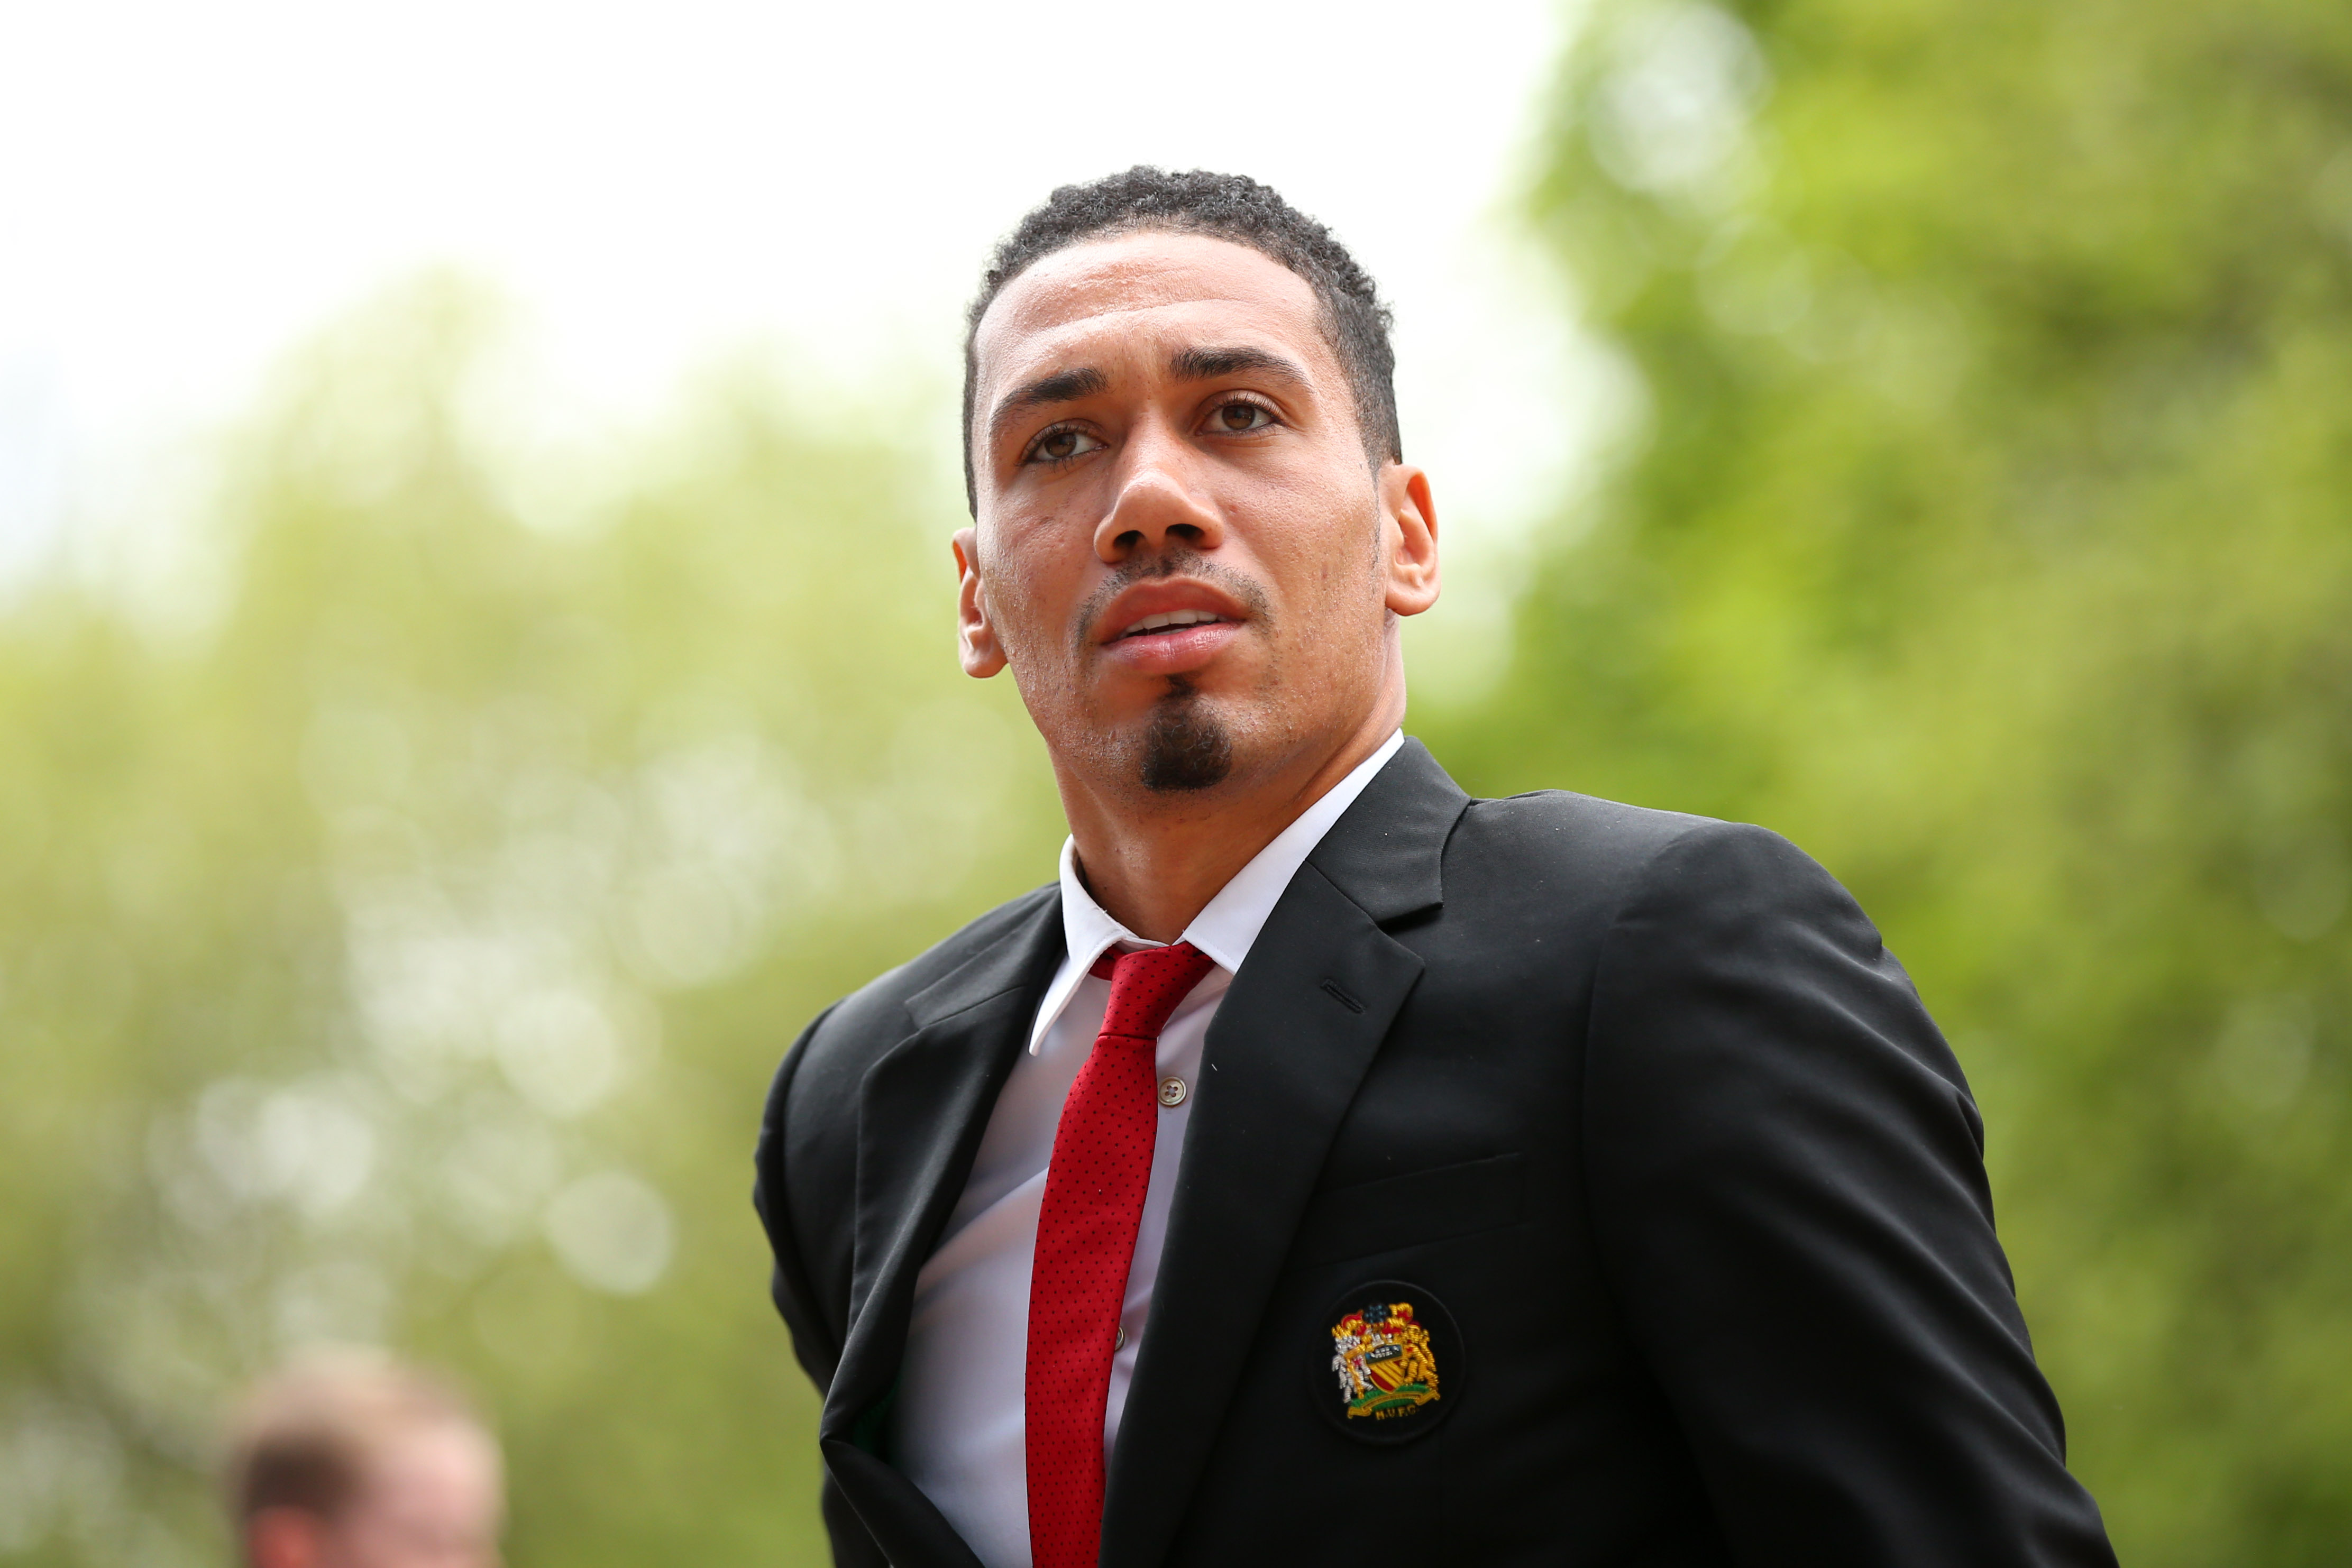 Chris Smalling is on the verge of joining AS Roma - Dead done.